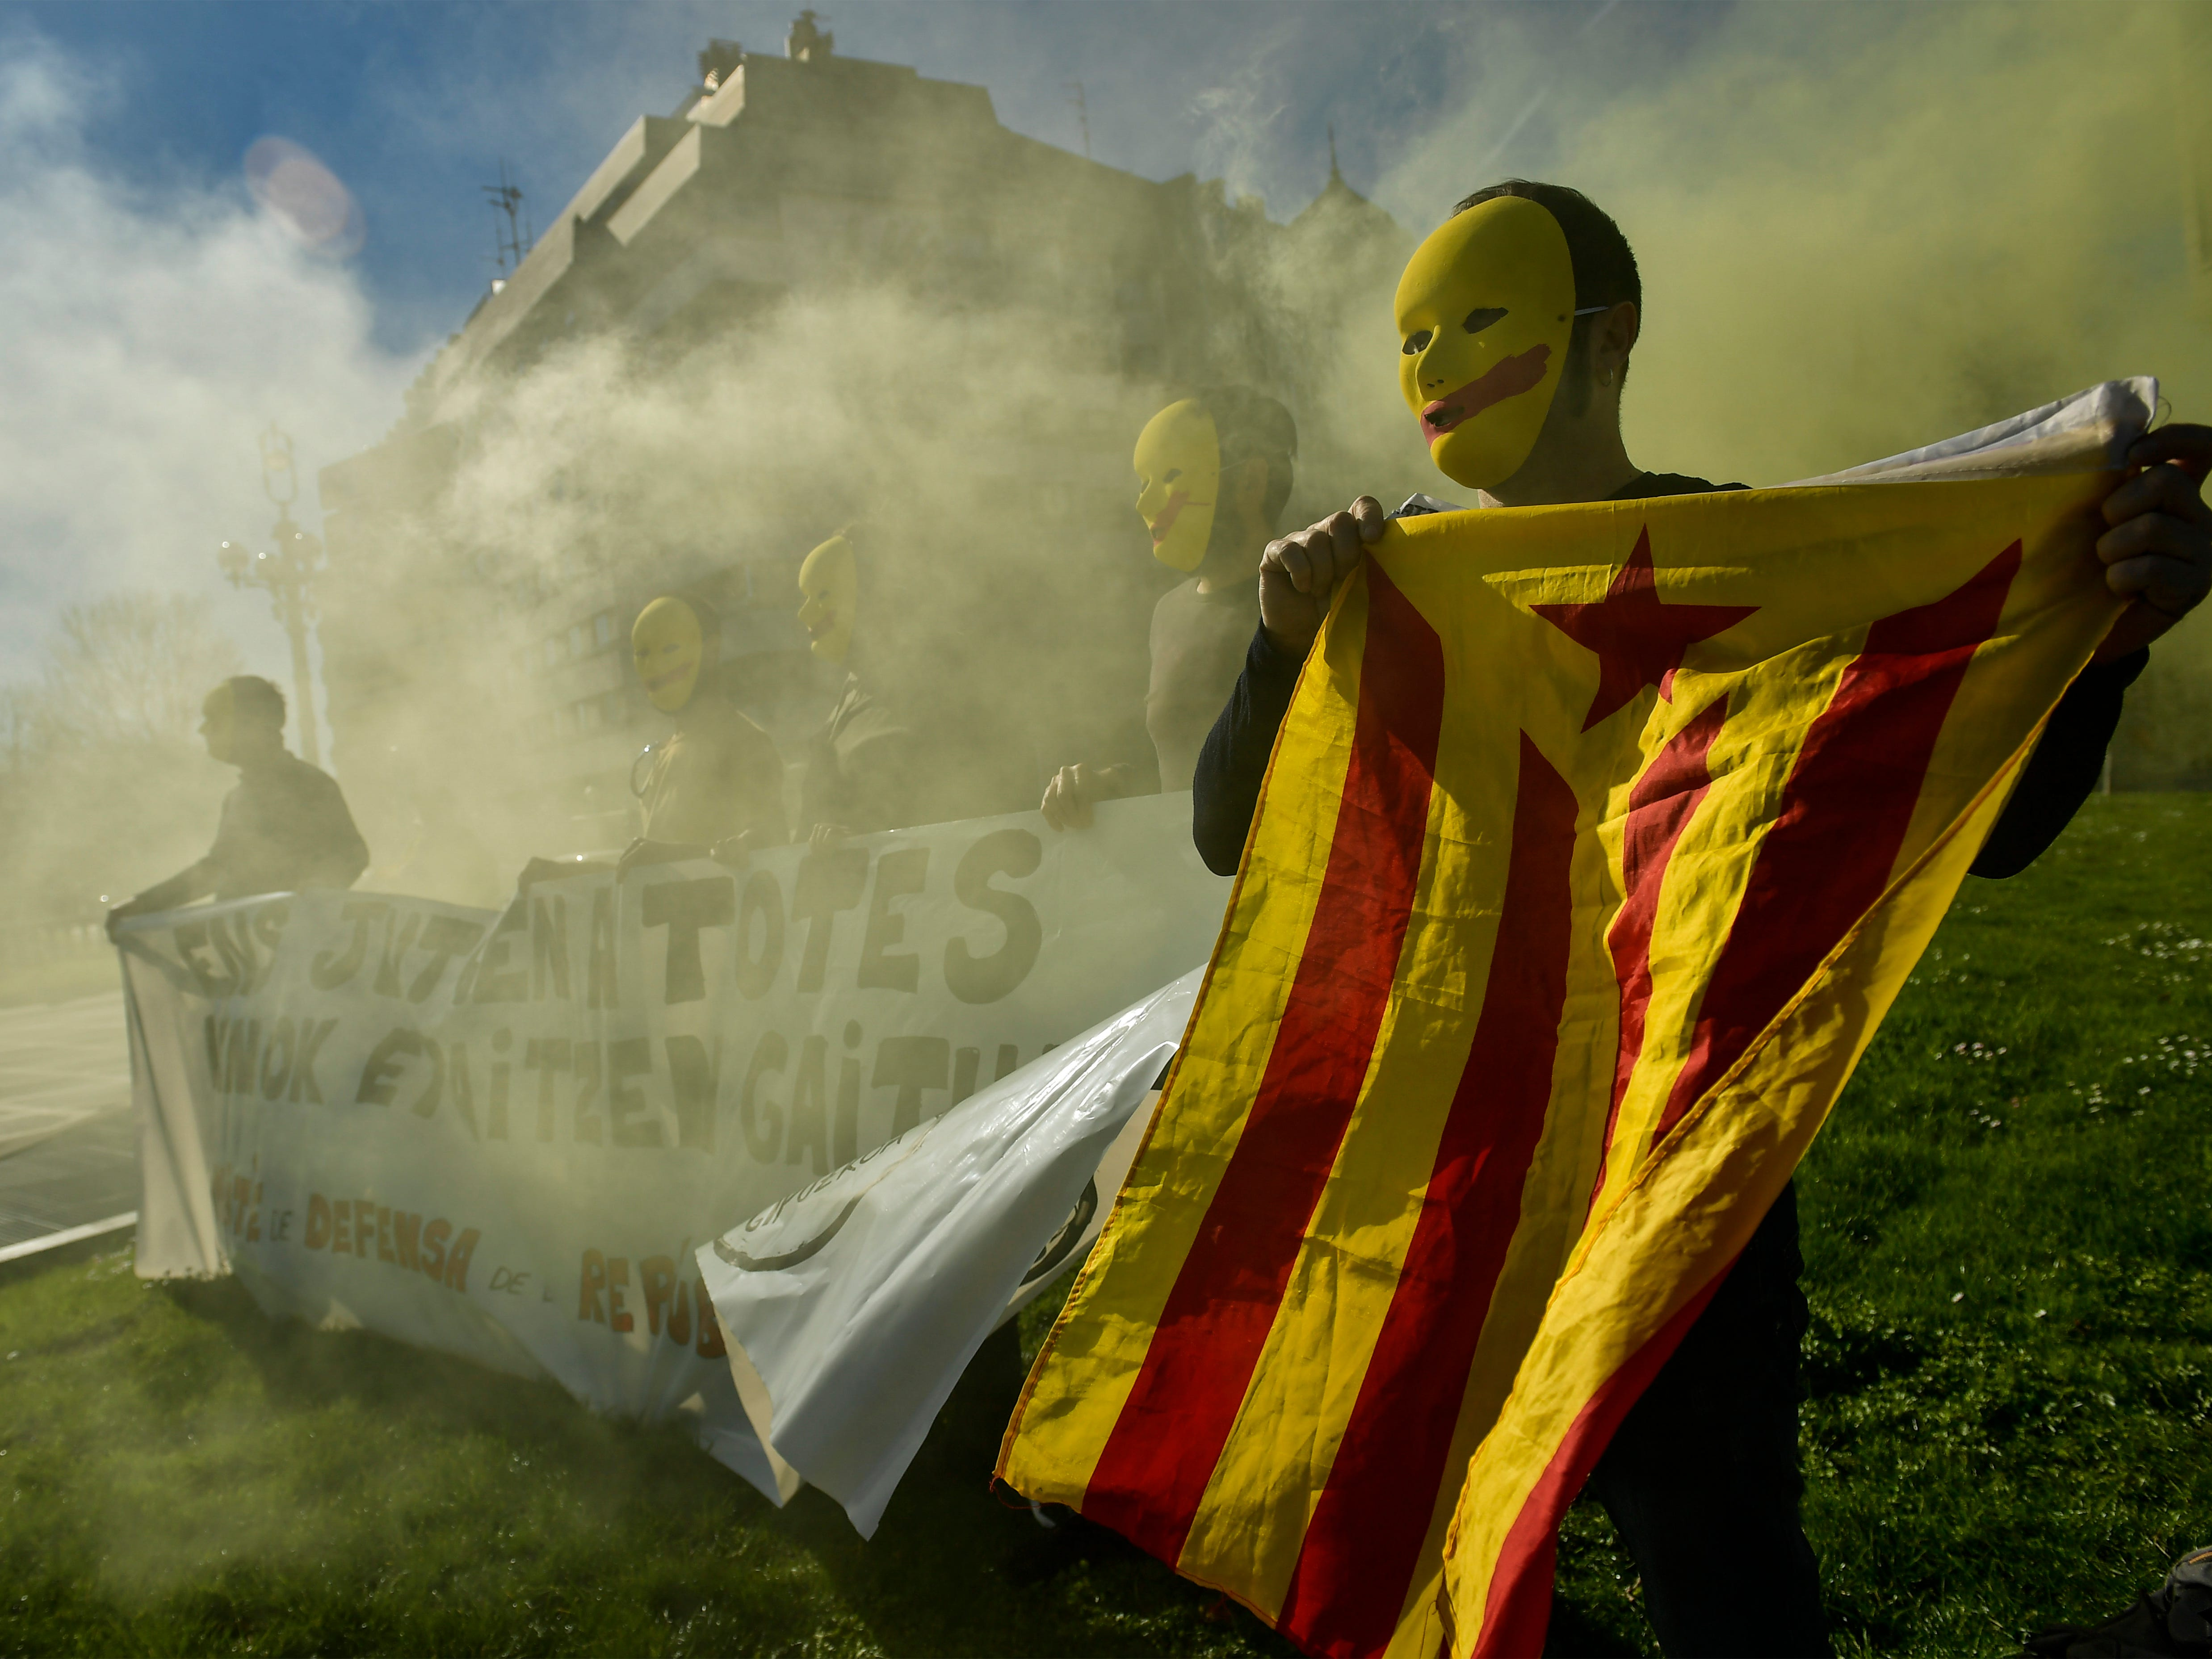 Pro-independence masked demonstrators, one displaying an estelada or independence flag, march during a demonstration supporting the imprisoned pro-independence political leaders in the basque city of San Sebastian, northern Spain, Sunday Feb. 17, 2019.